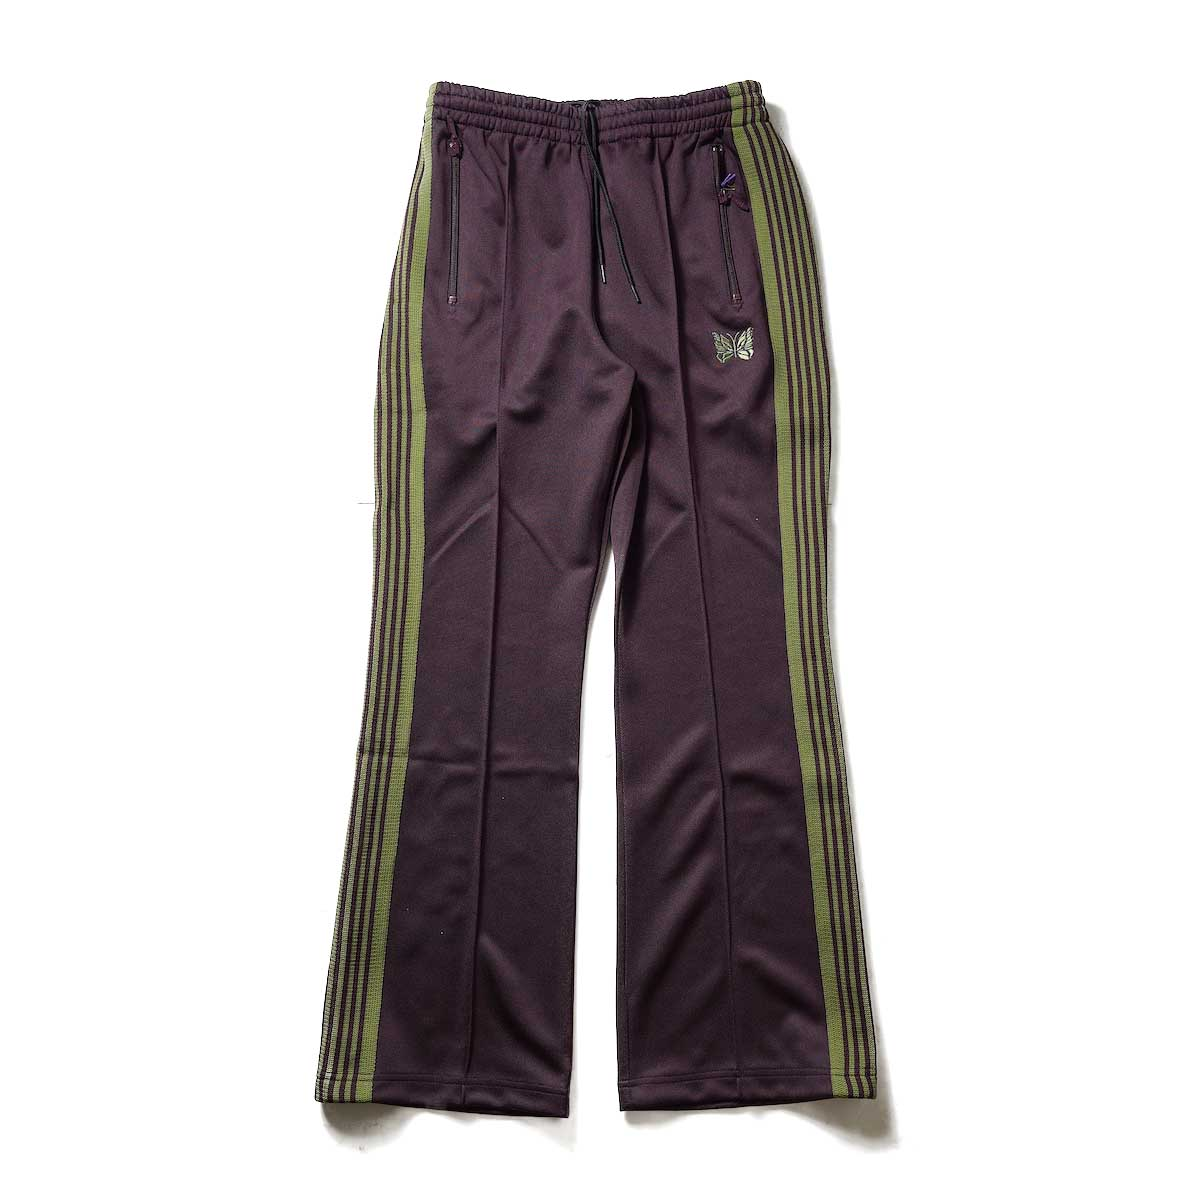 Needles / Boot-Cut Track Pant -Poly Smooth (Maroon)正面